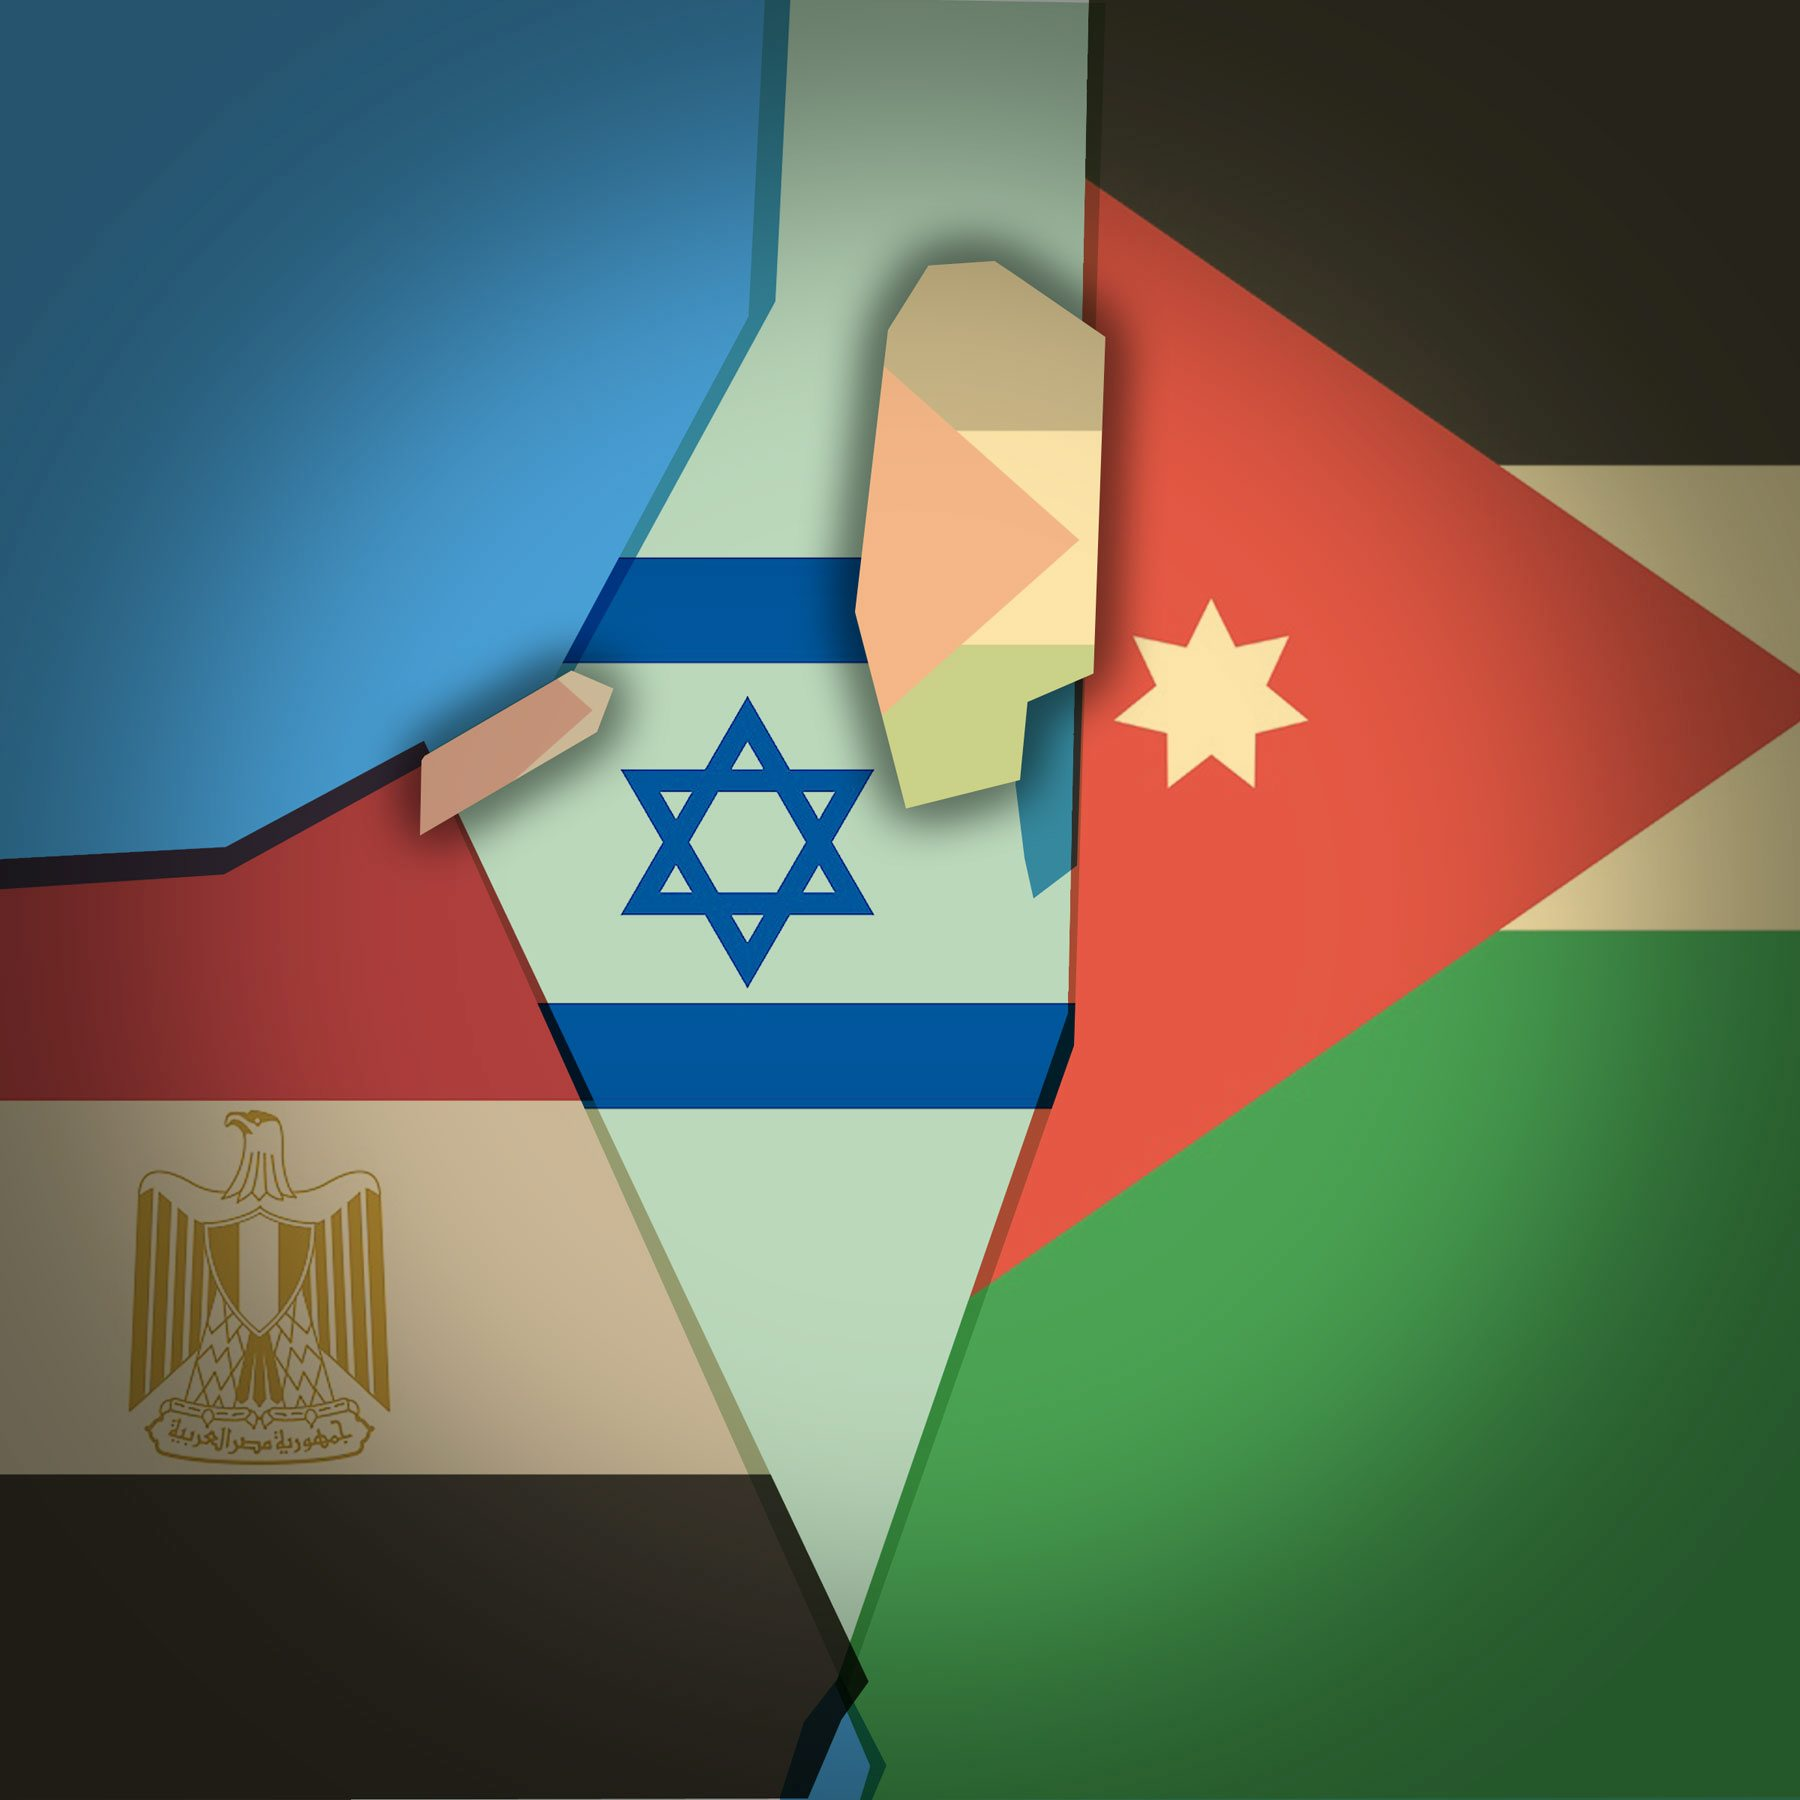 The three-state solution